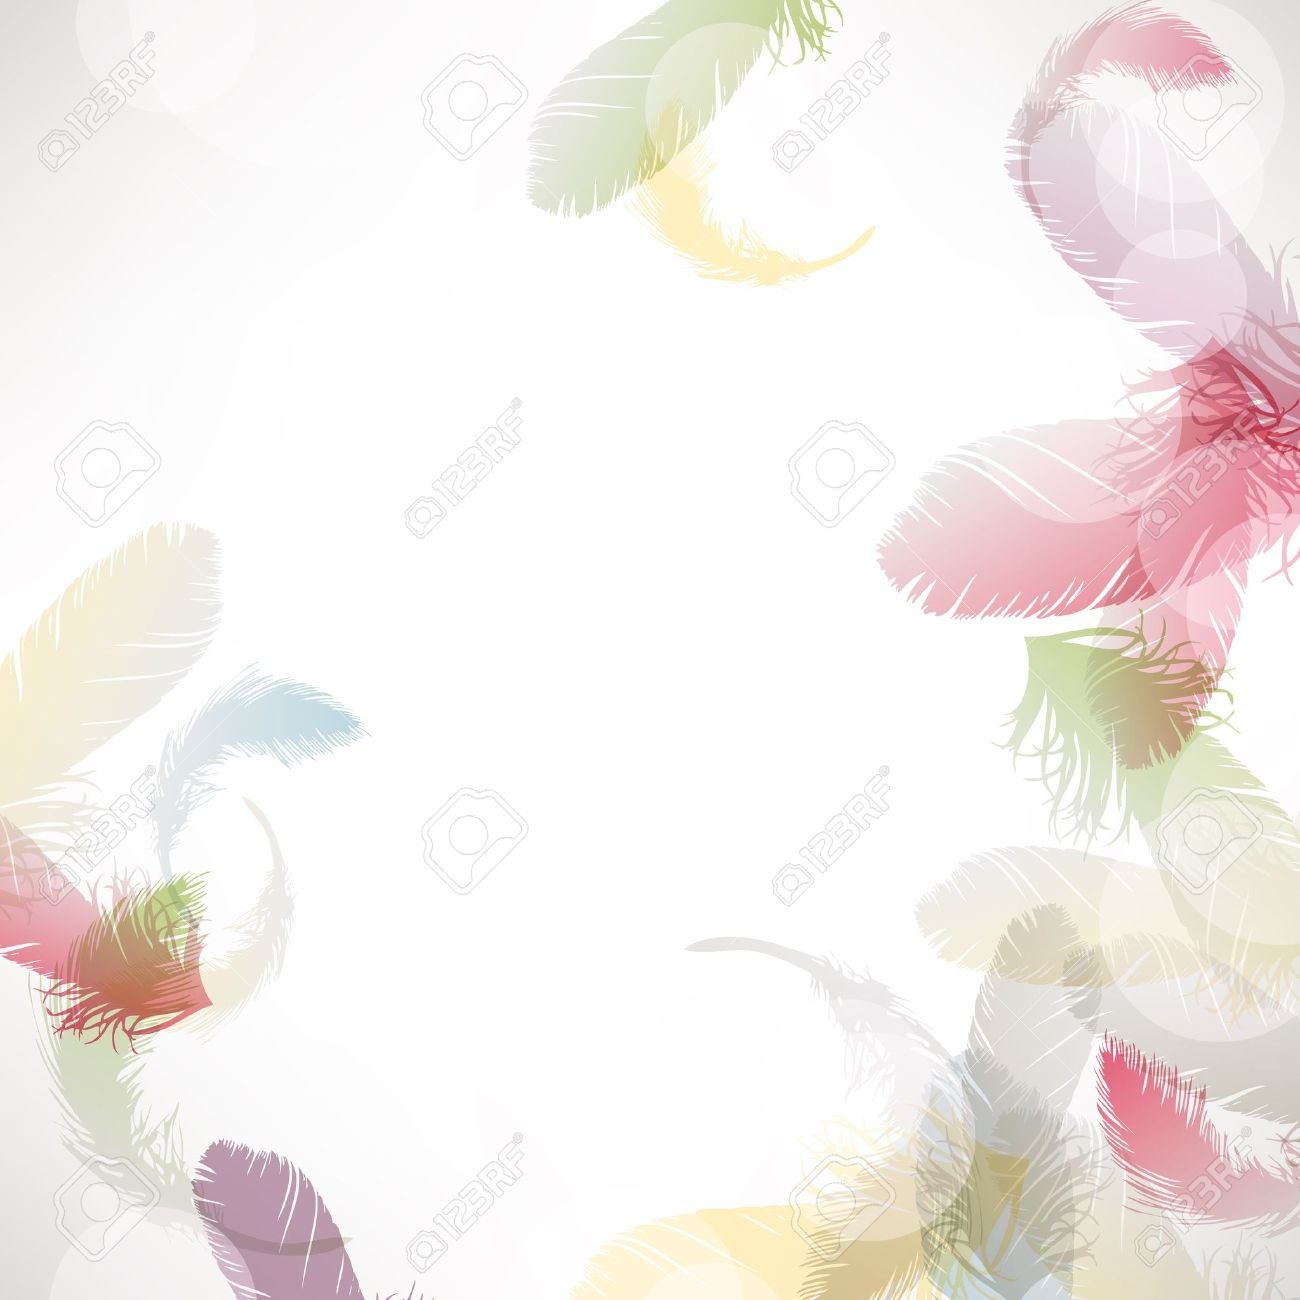 Feathers Wallpapers HD